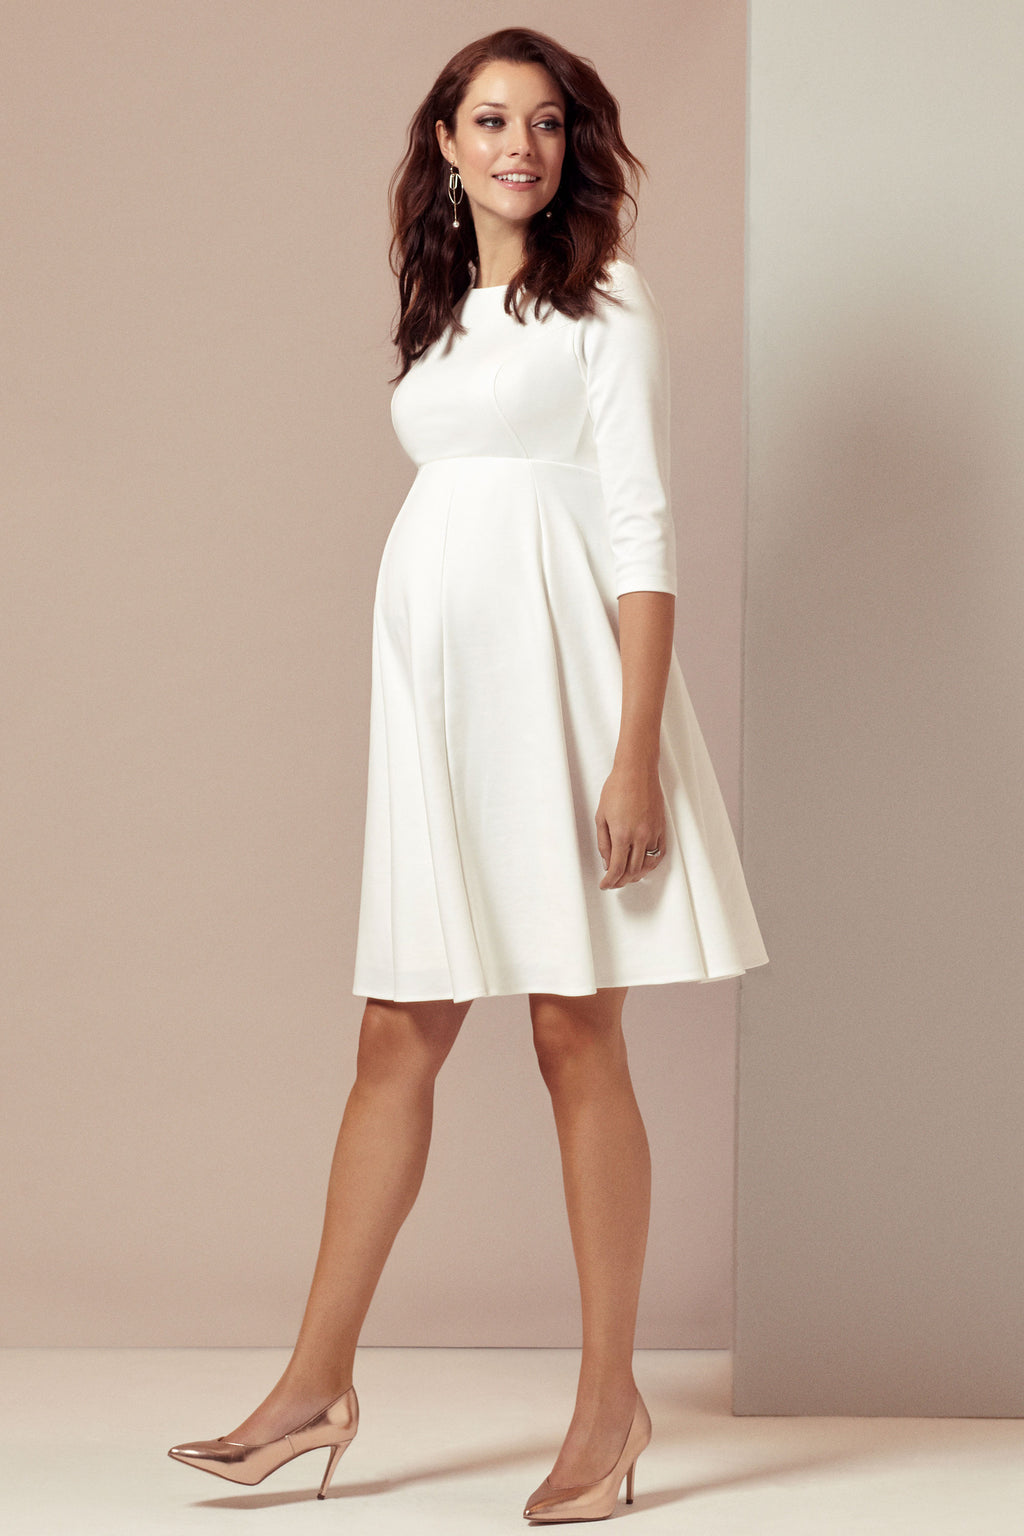 Tiffany Rose Sienna Maternity Dress in Ivory